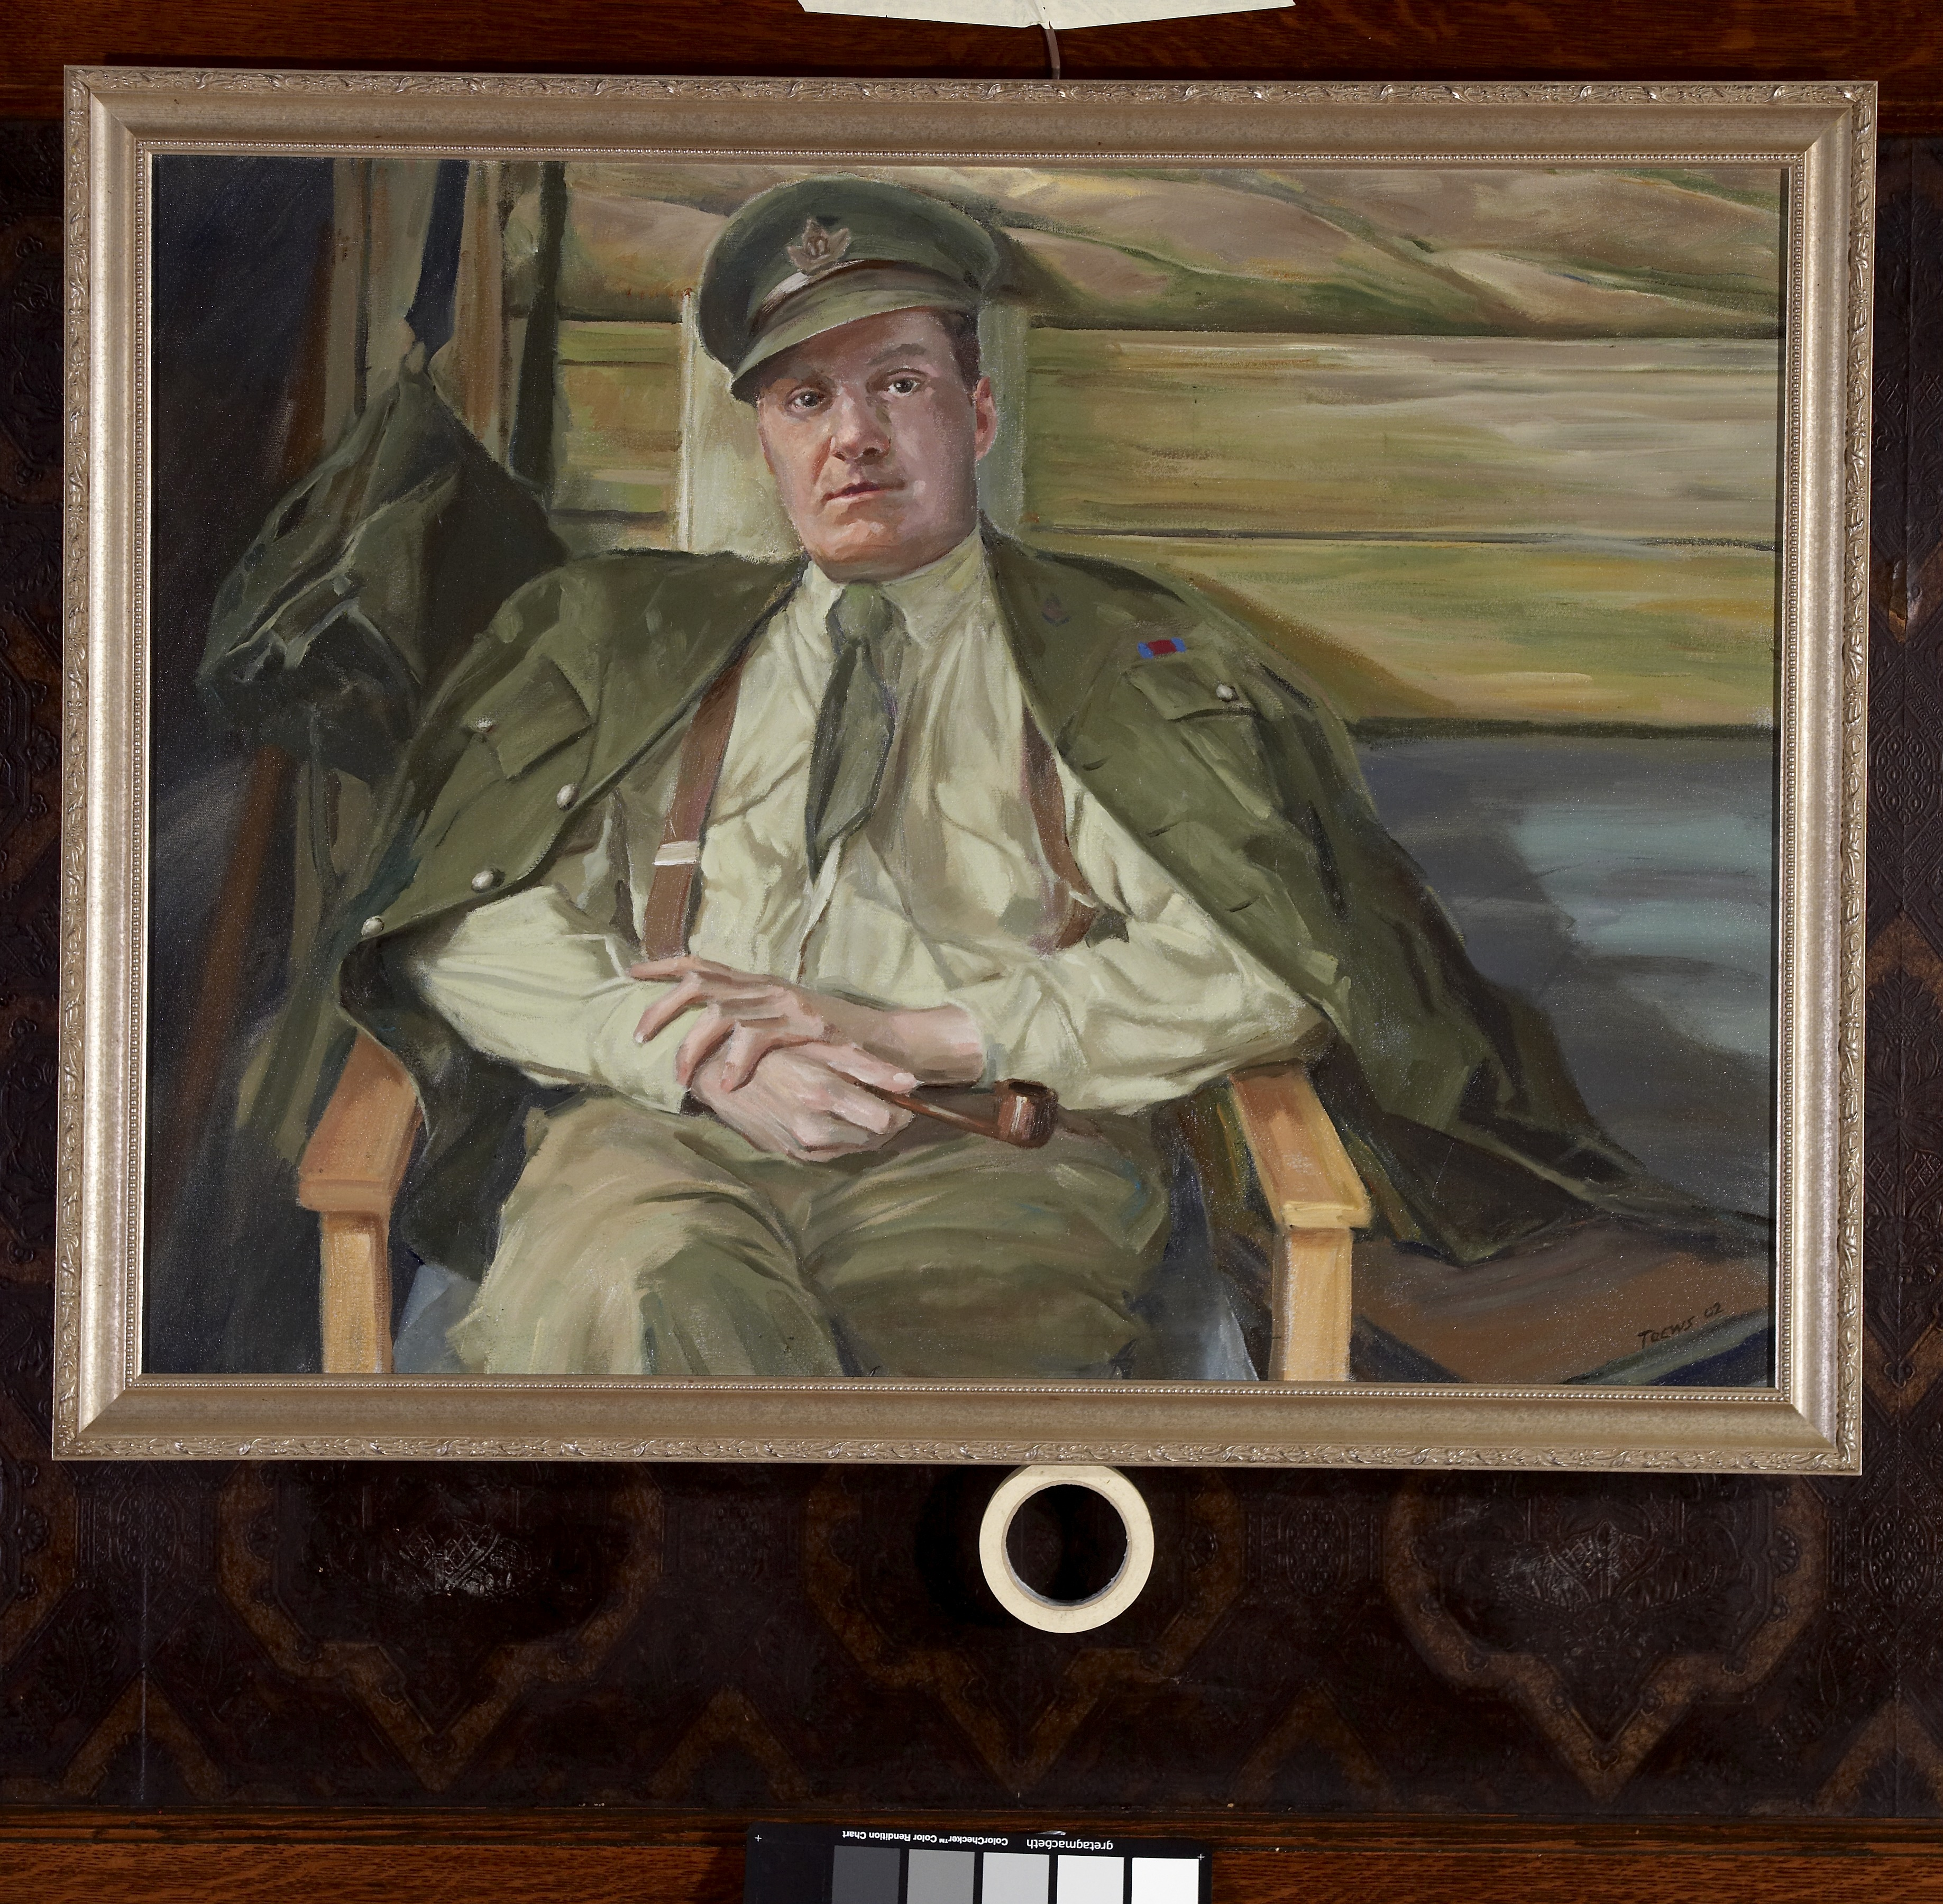 Lorne Toews, oil portrait of Lt-Col L.H. Millen, DSO, in the trenches, c. Feb. 1918.